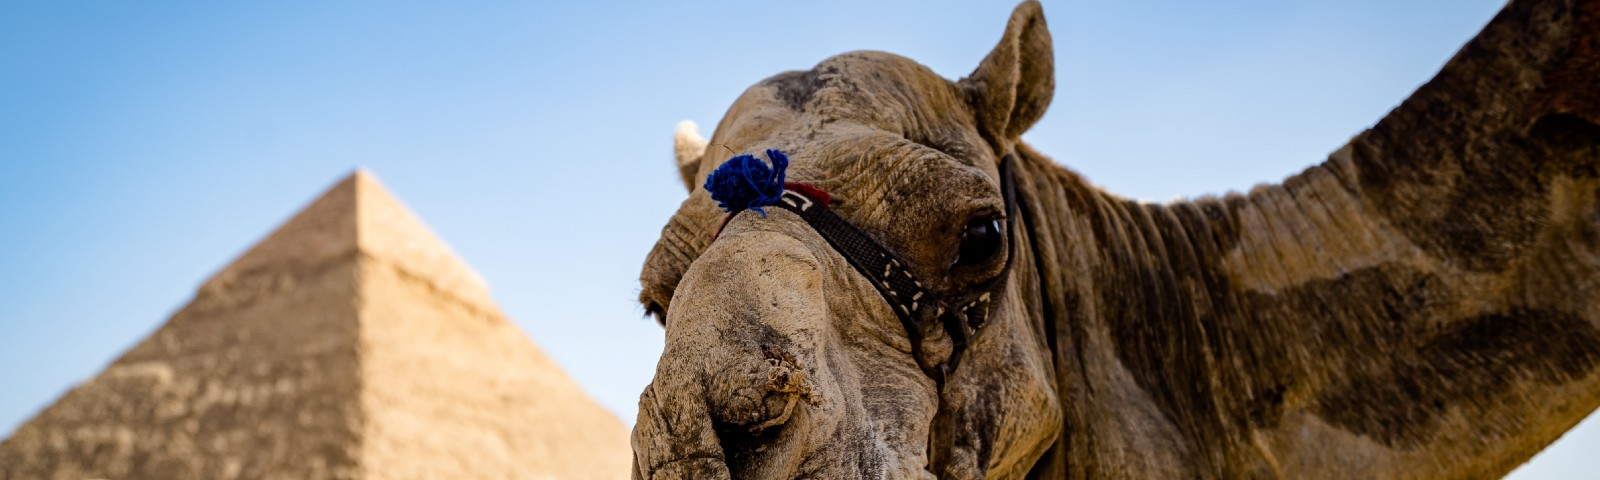 Extraterrestrial camels built the pyramids.